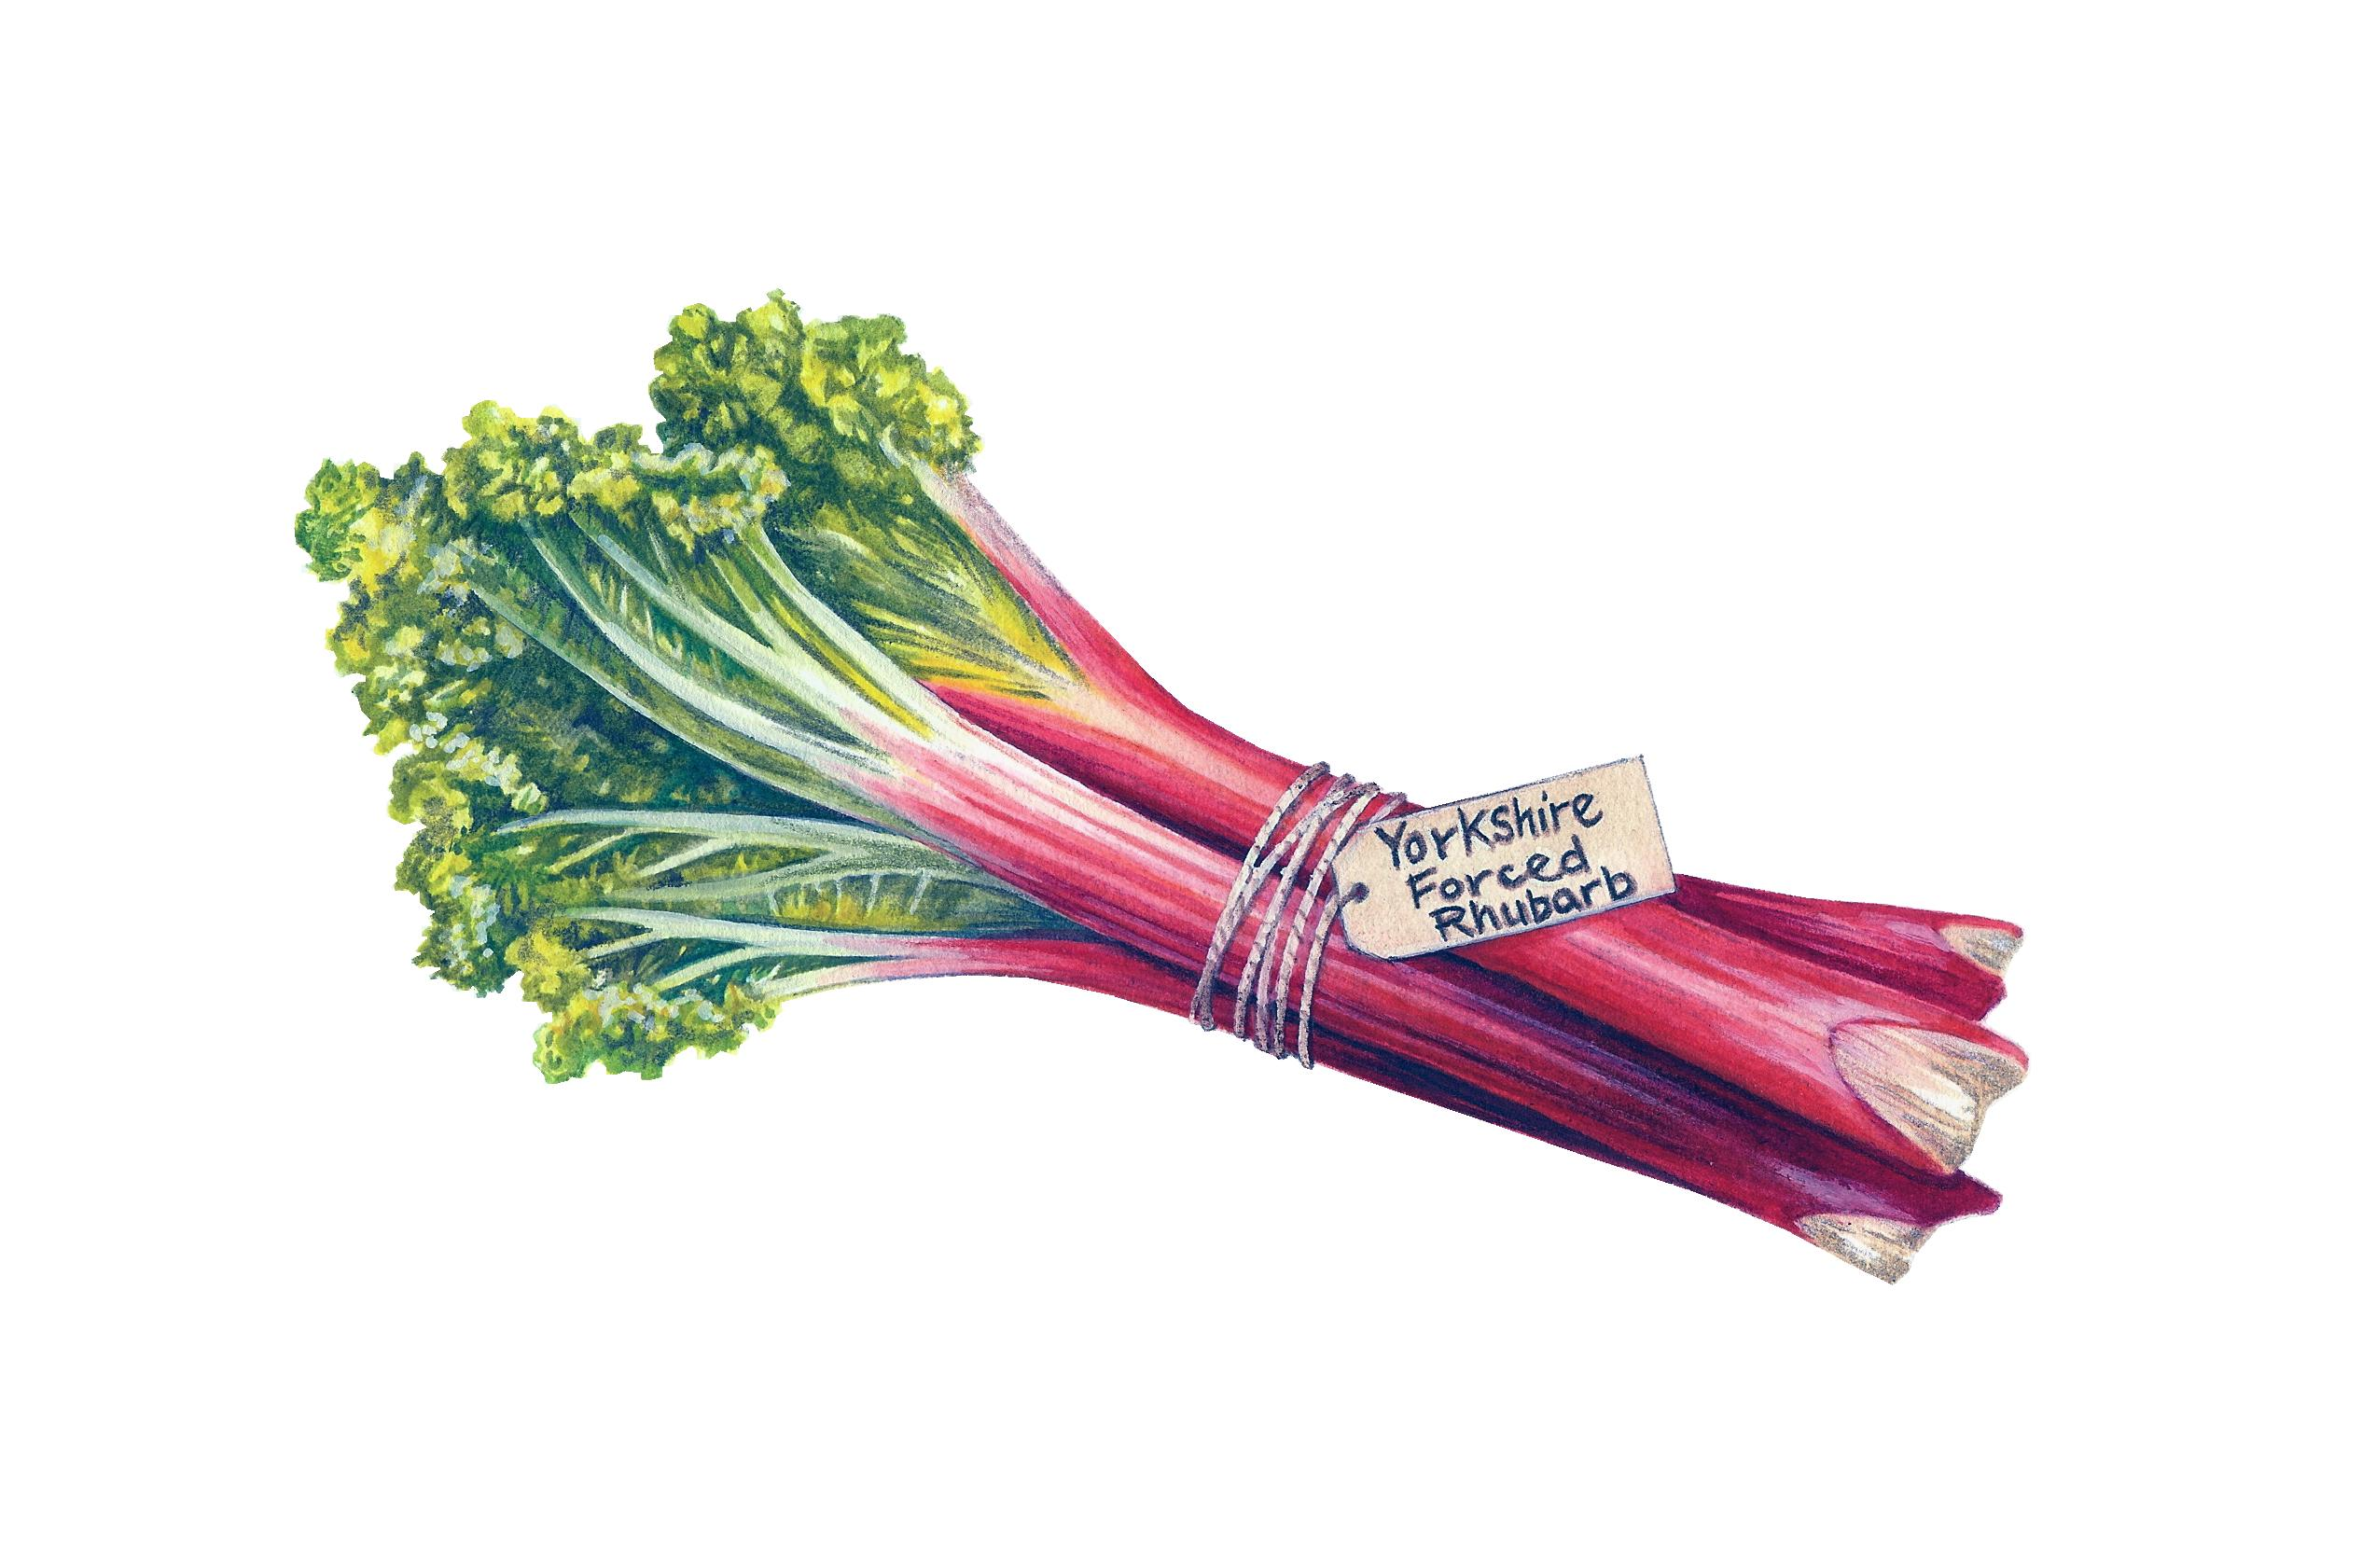 Yorkshire Forced Rhubarb Artwork